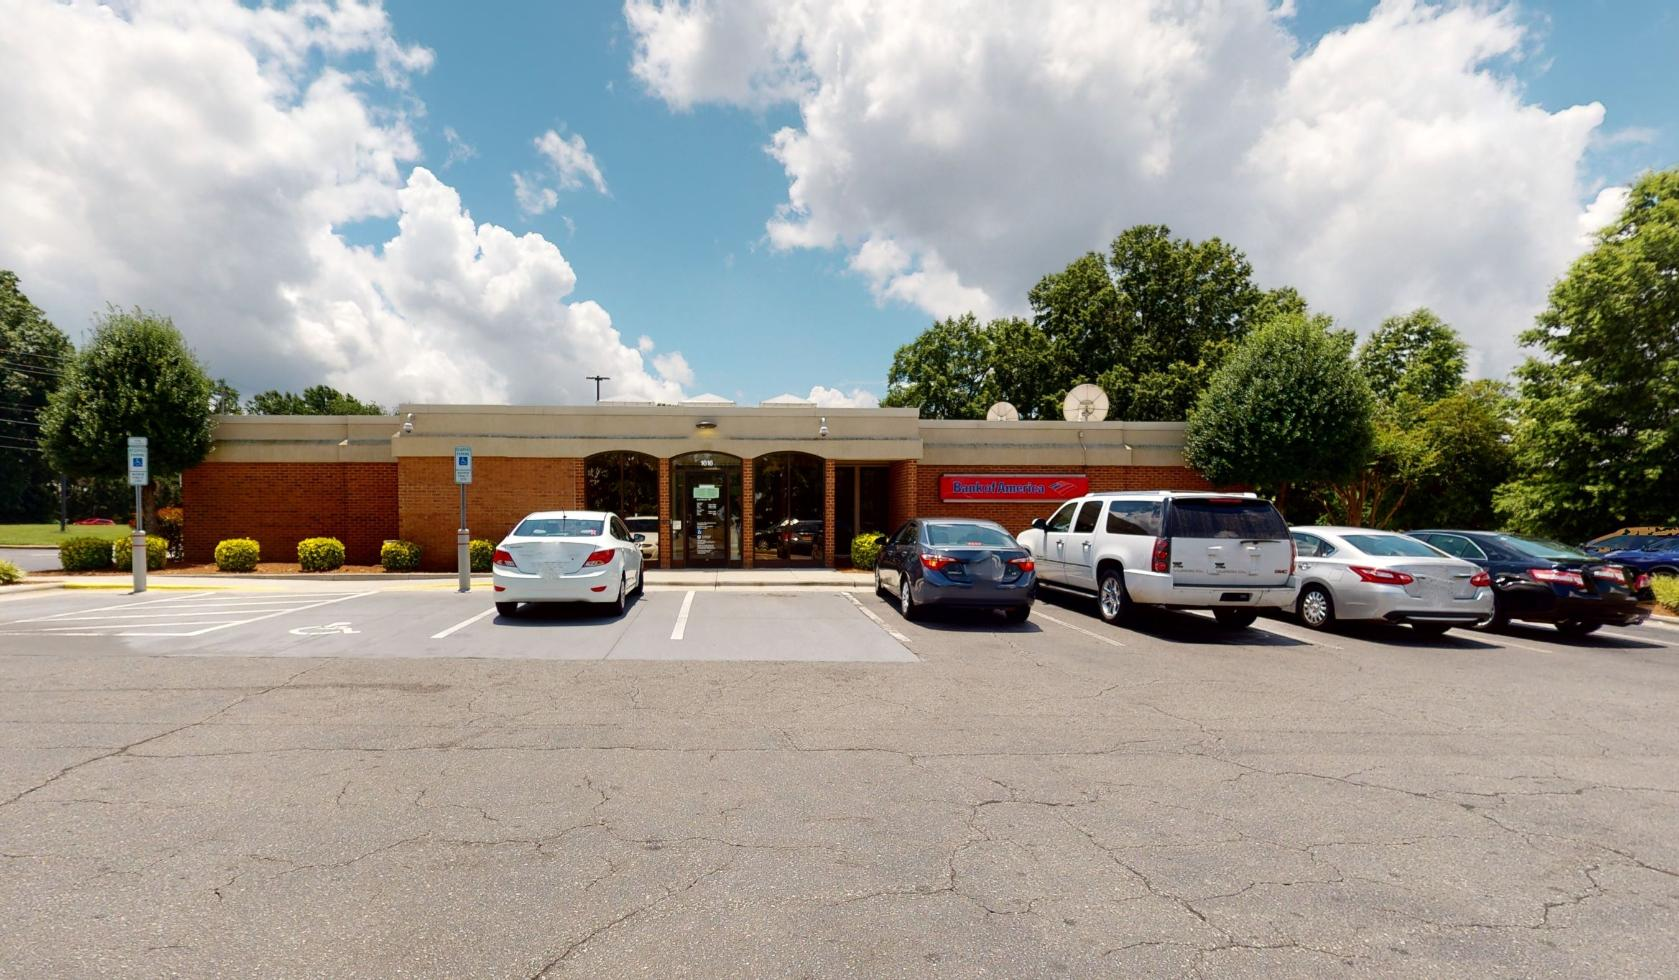 Bank of America financial center with drive-thru ATM and teller | 1616 E Broad St, Statesville, NC 28625